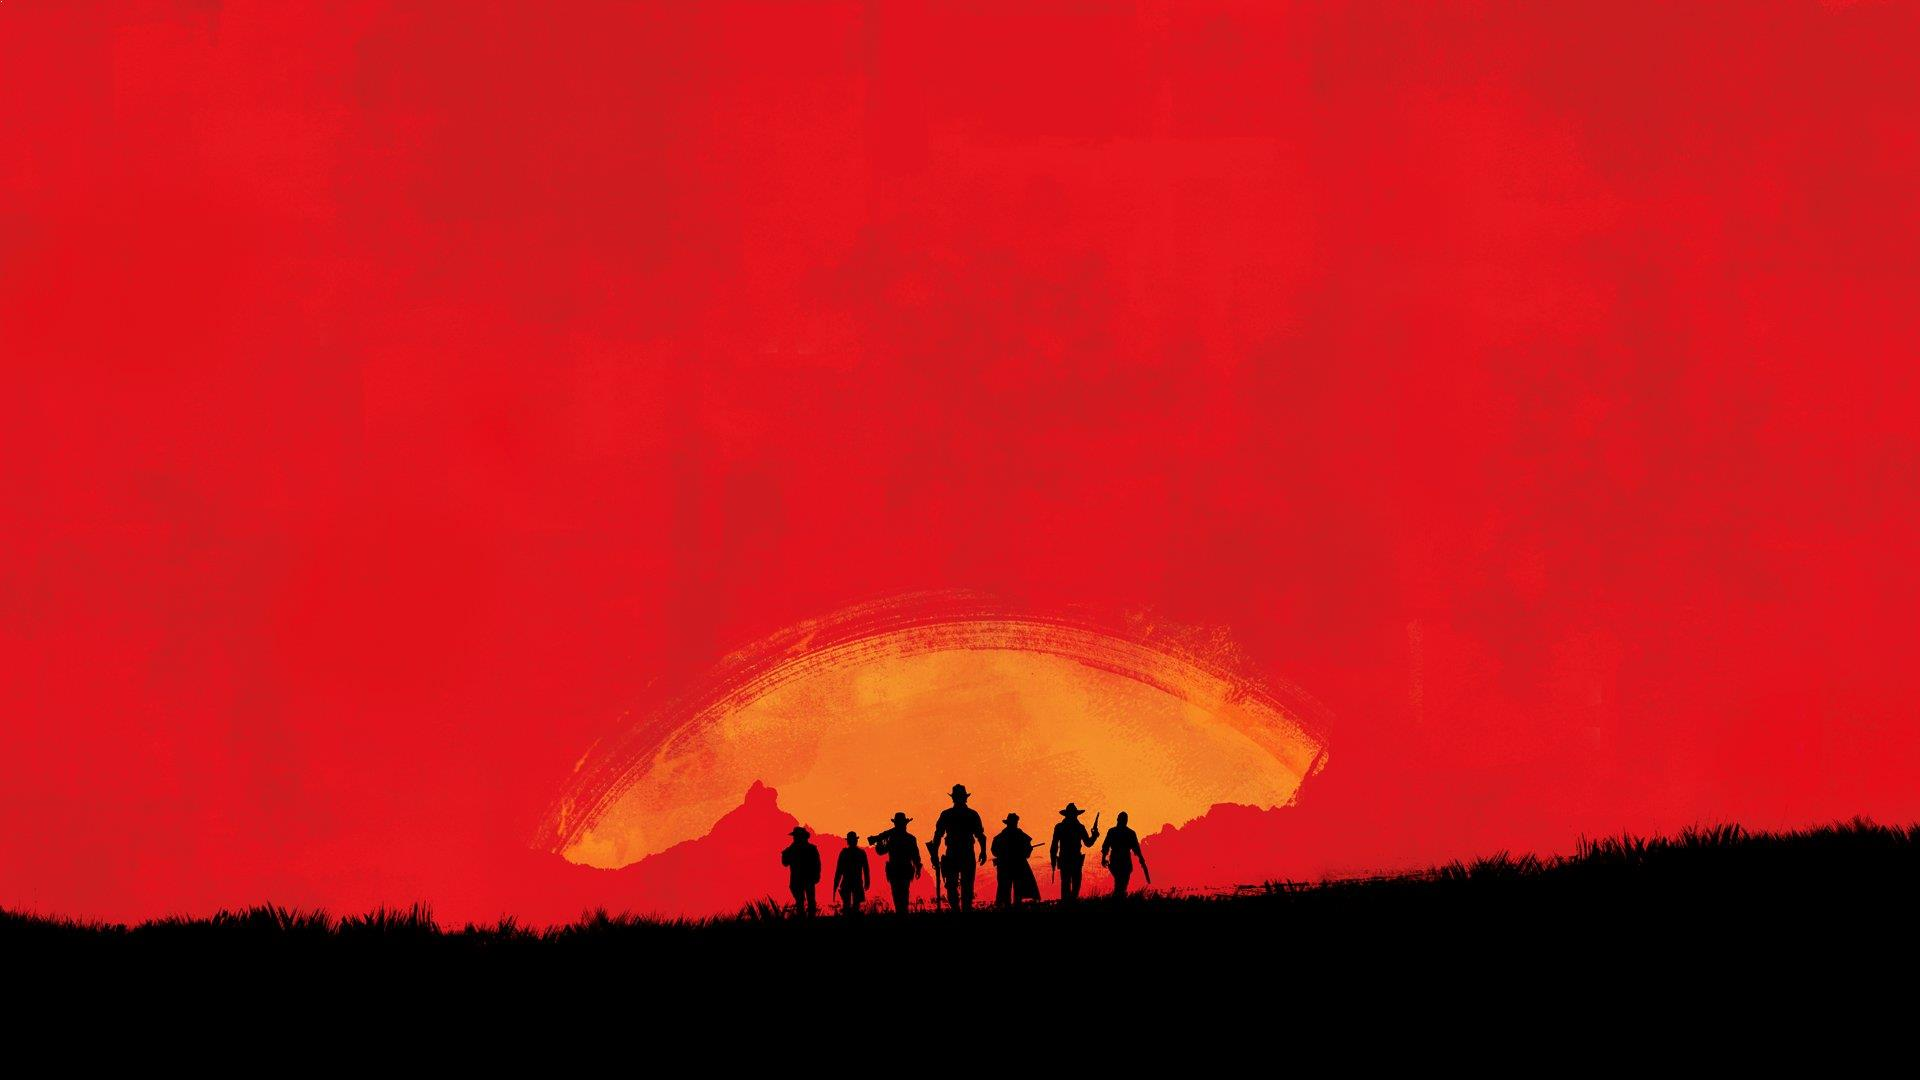 Another potential Red Dead tease from Rockstar